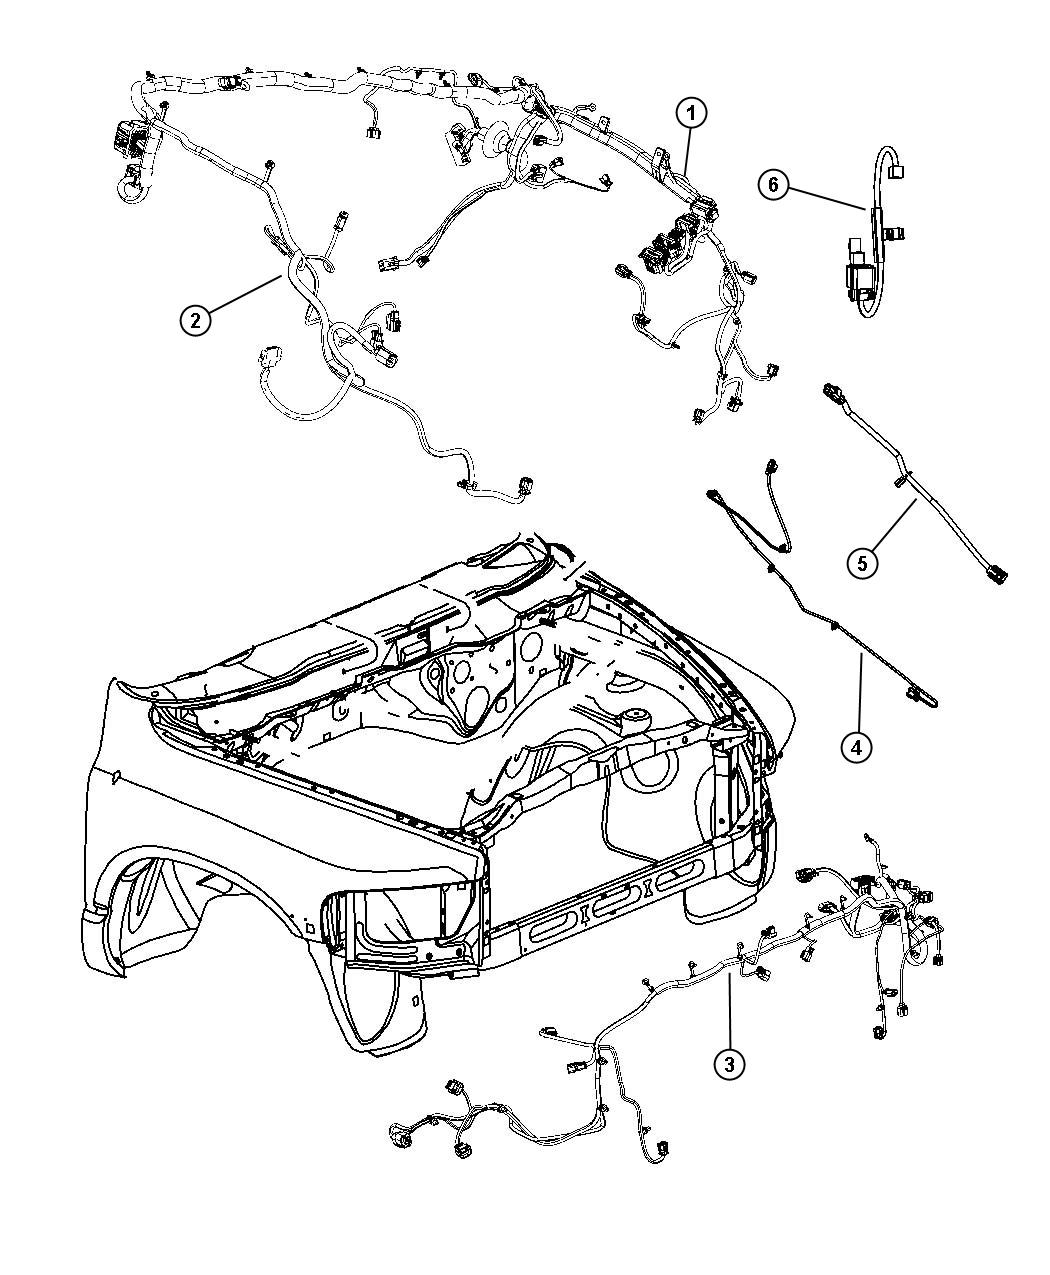 2011 Dodge Ram Wiring Diagram from www.moparpartsinc.com